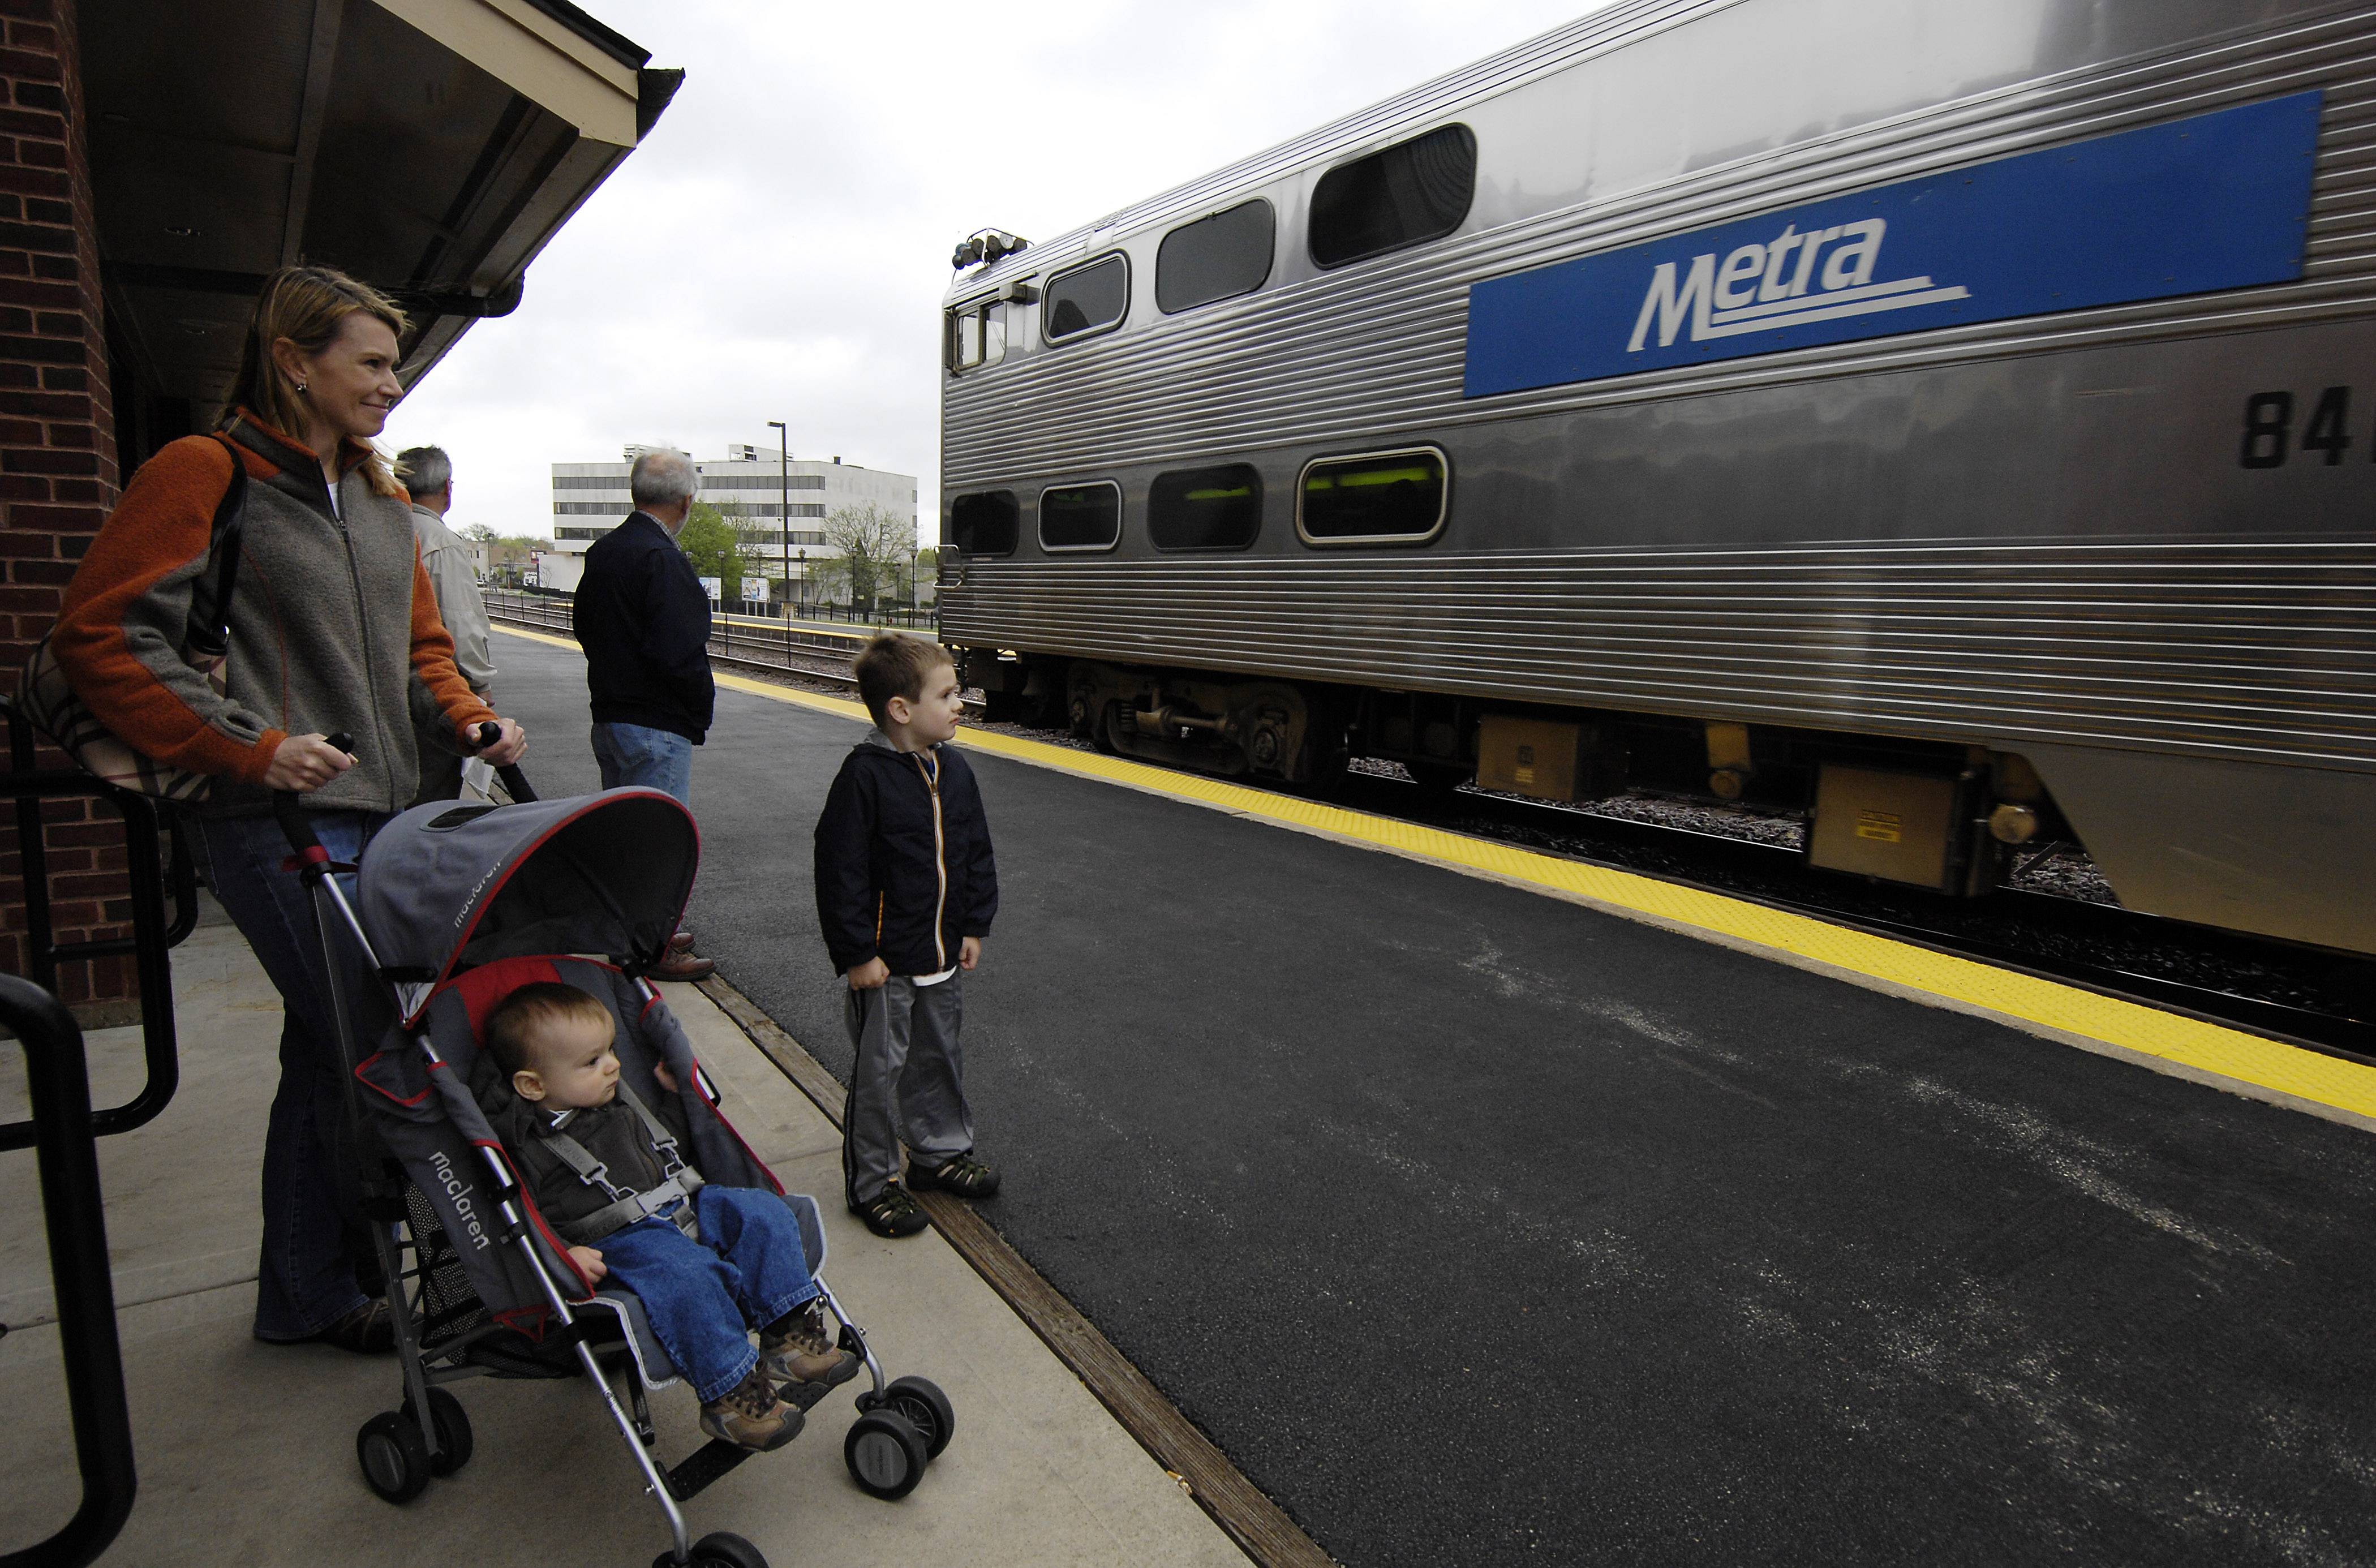 What Metra stations are popular? Agency looking at well-used and underused stops